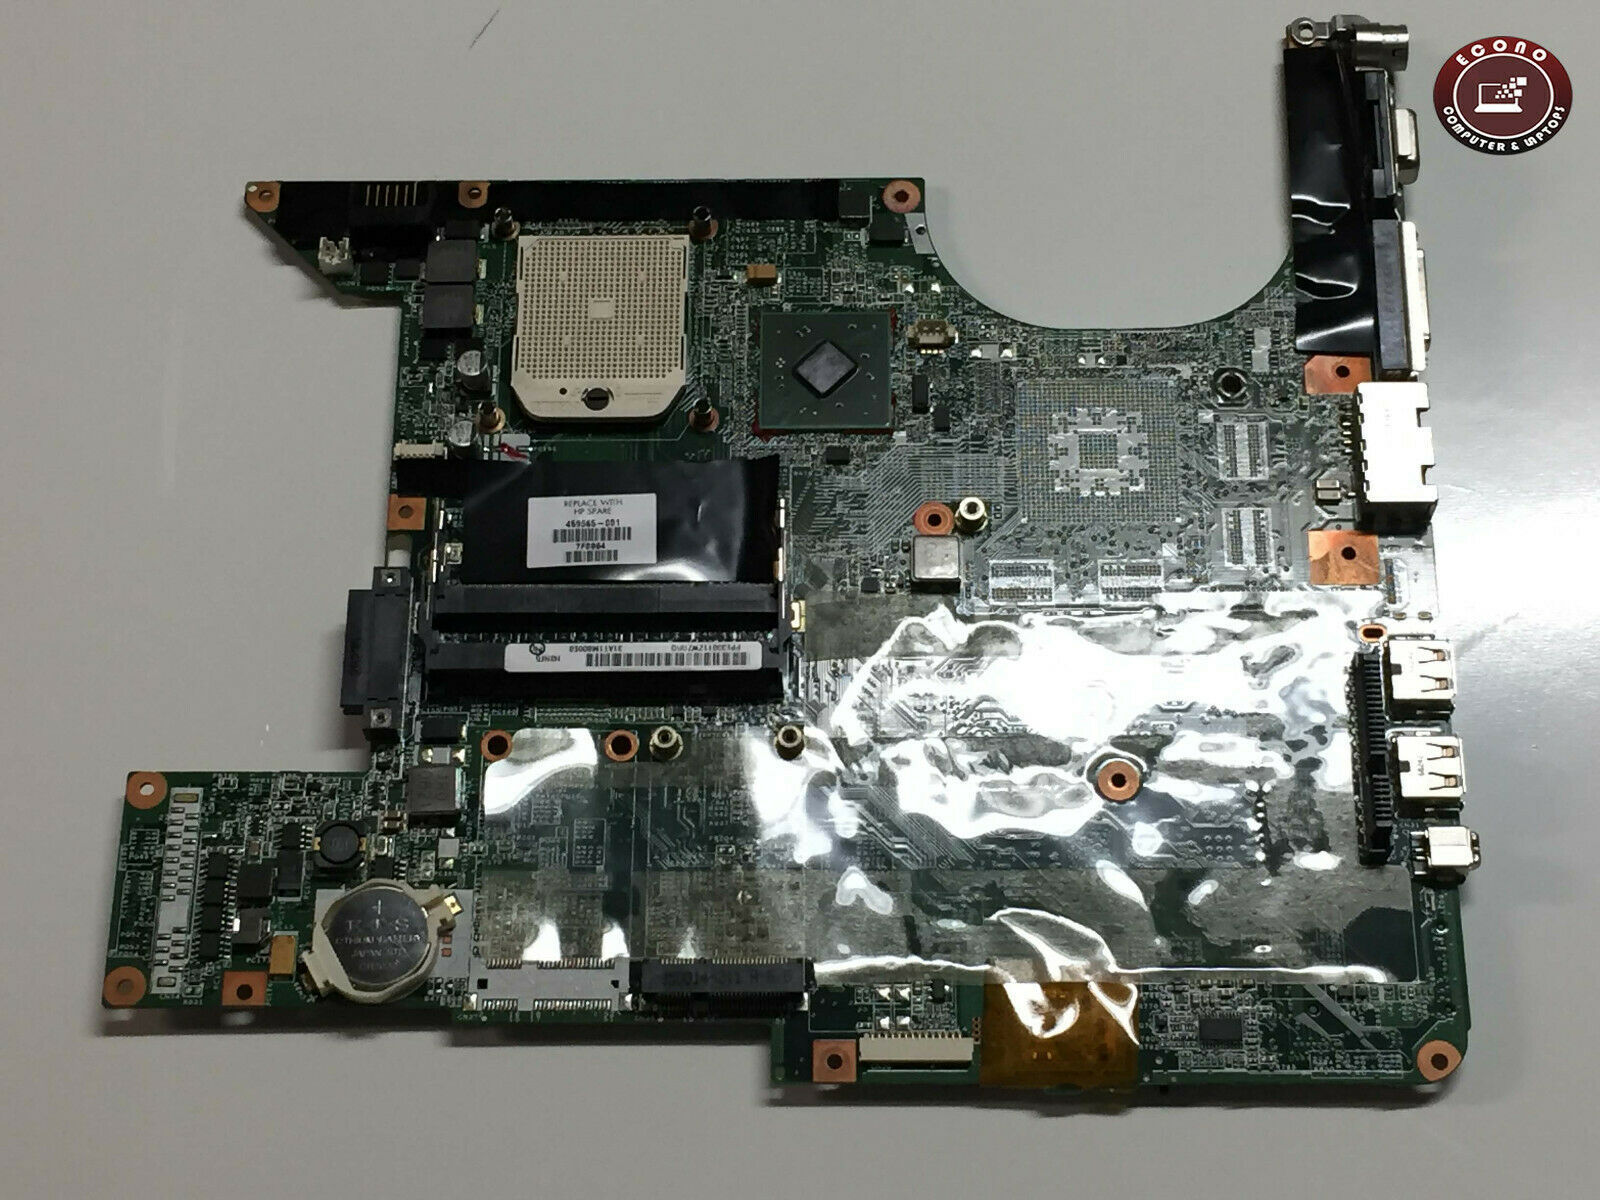 Primary image for HP DV6000 Laptop Motherboard 459565-001 (AS-IS)